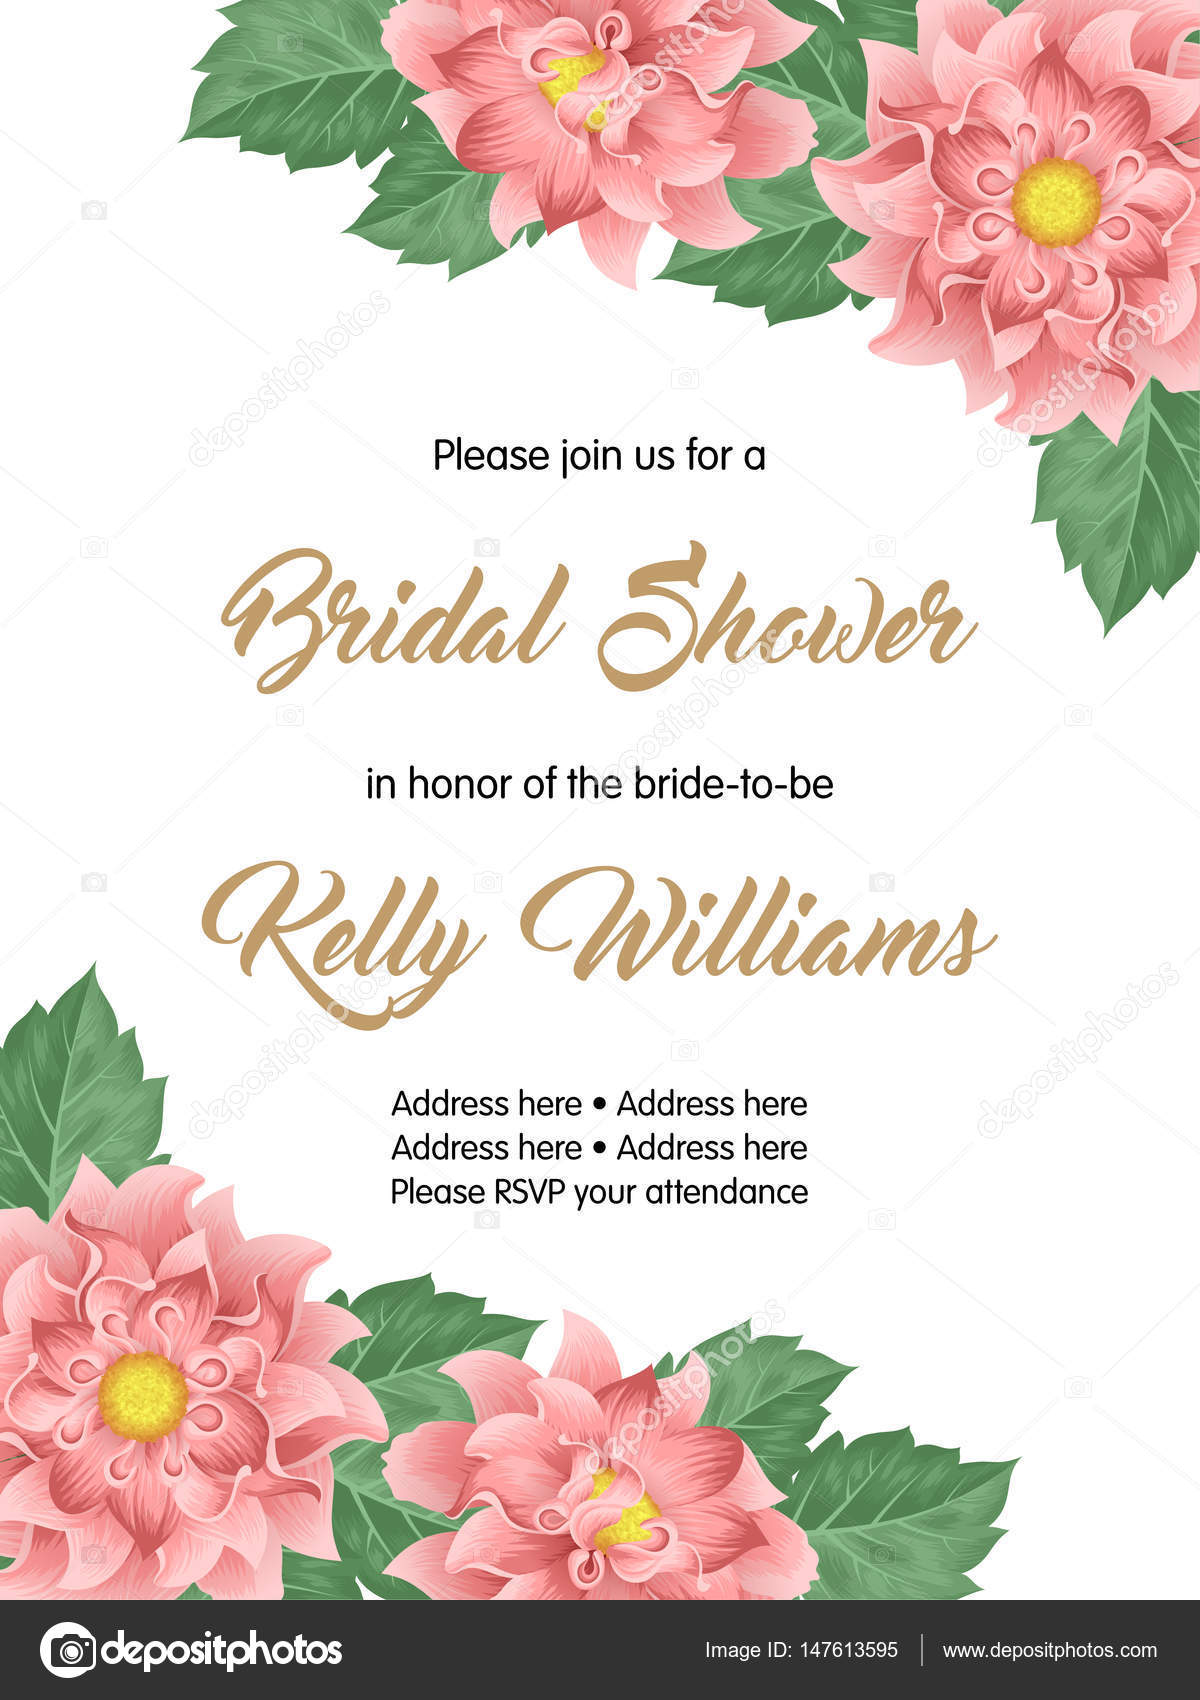 Bridal Shower Invitation Template Stock Vector NonikaStar - Bridal shower invitation template